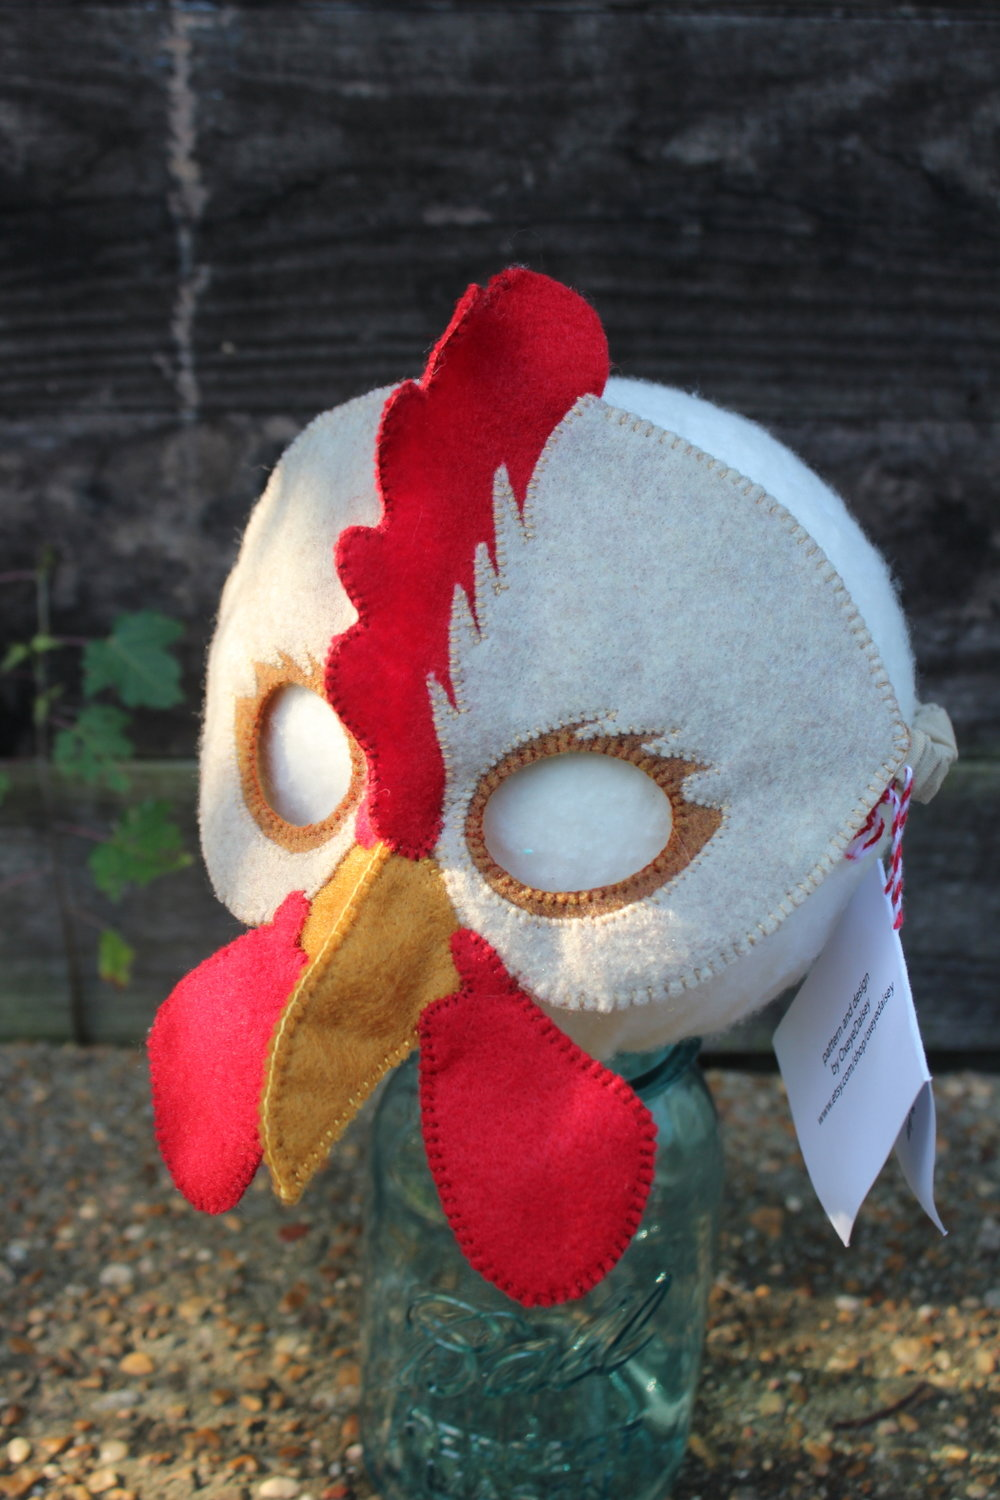 Chicken Mask, sewn by me, pattern by Oxeyedaisy at https://www.etsy.com/shop/oxeyedaisey